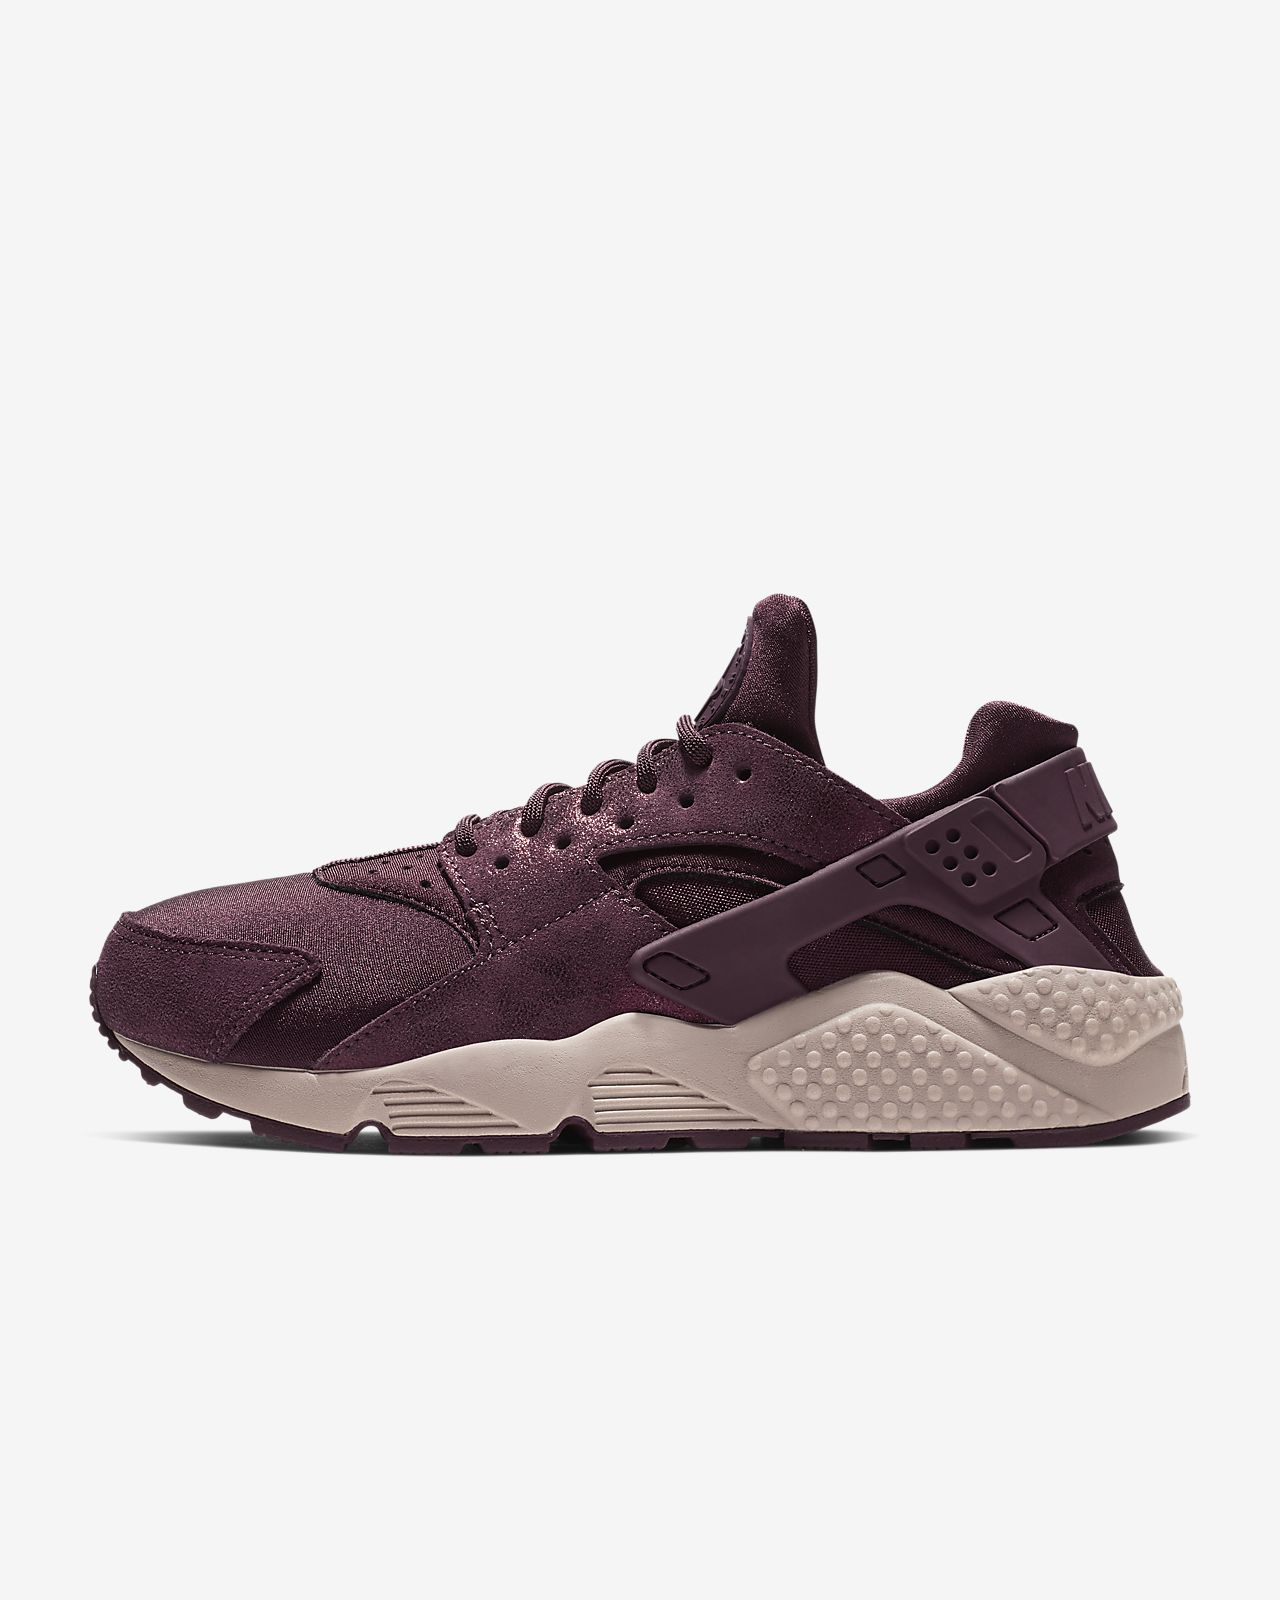 4d606c91efa ... Nike Air Huarache Run Women s Shoe